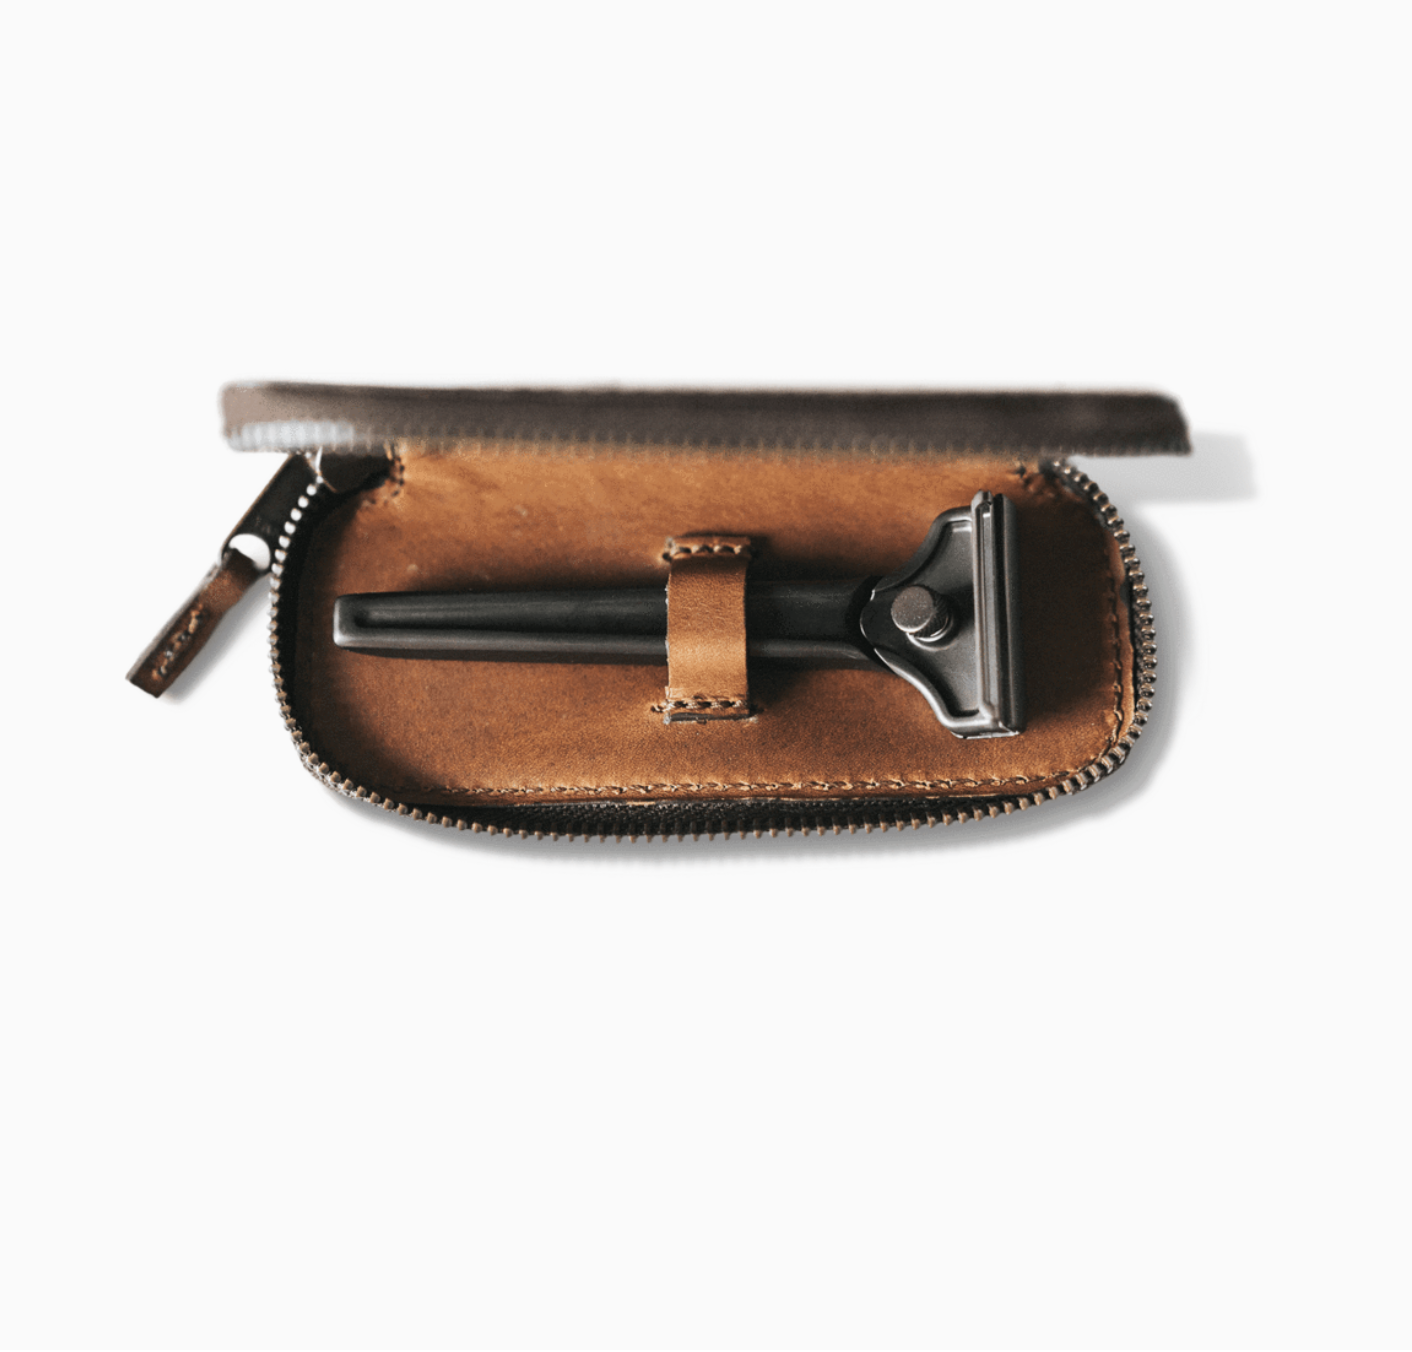 The Single Edge Travel Case